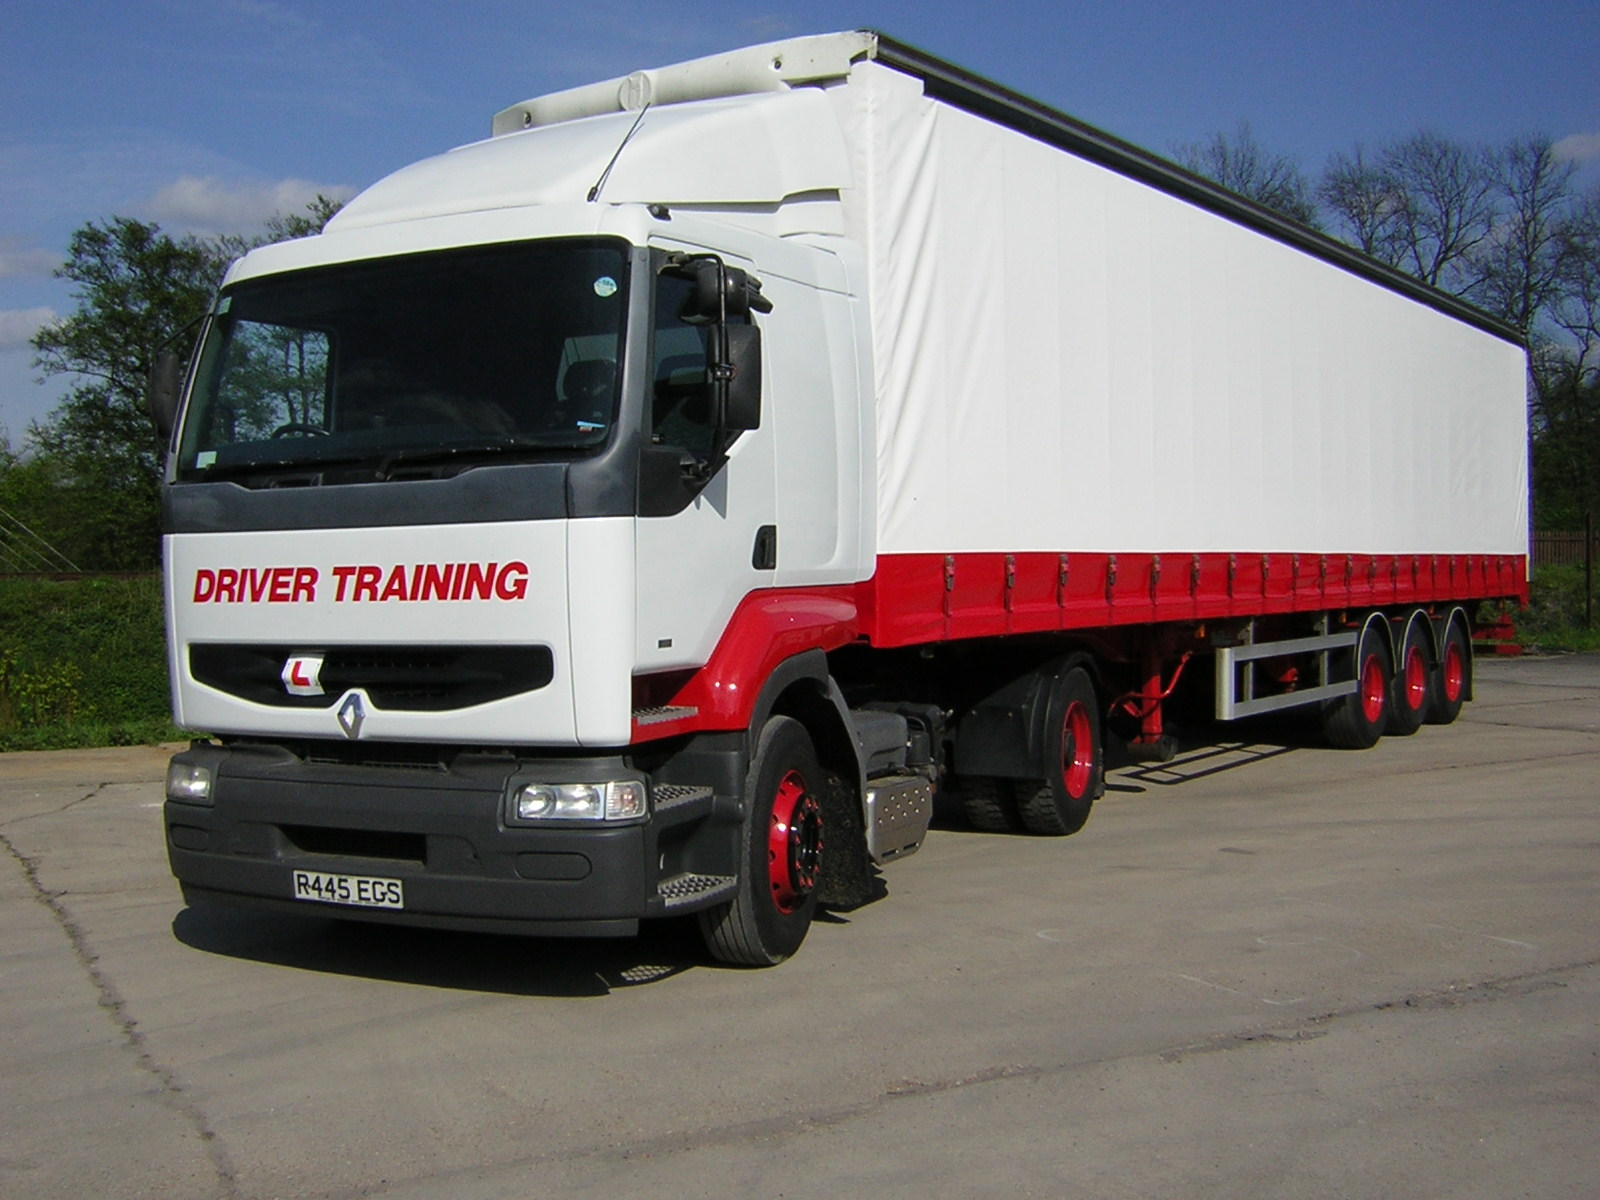 Shunter Vehicle Training